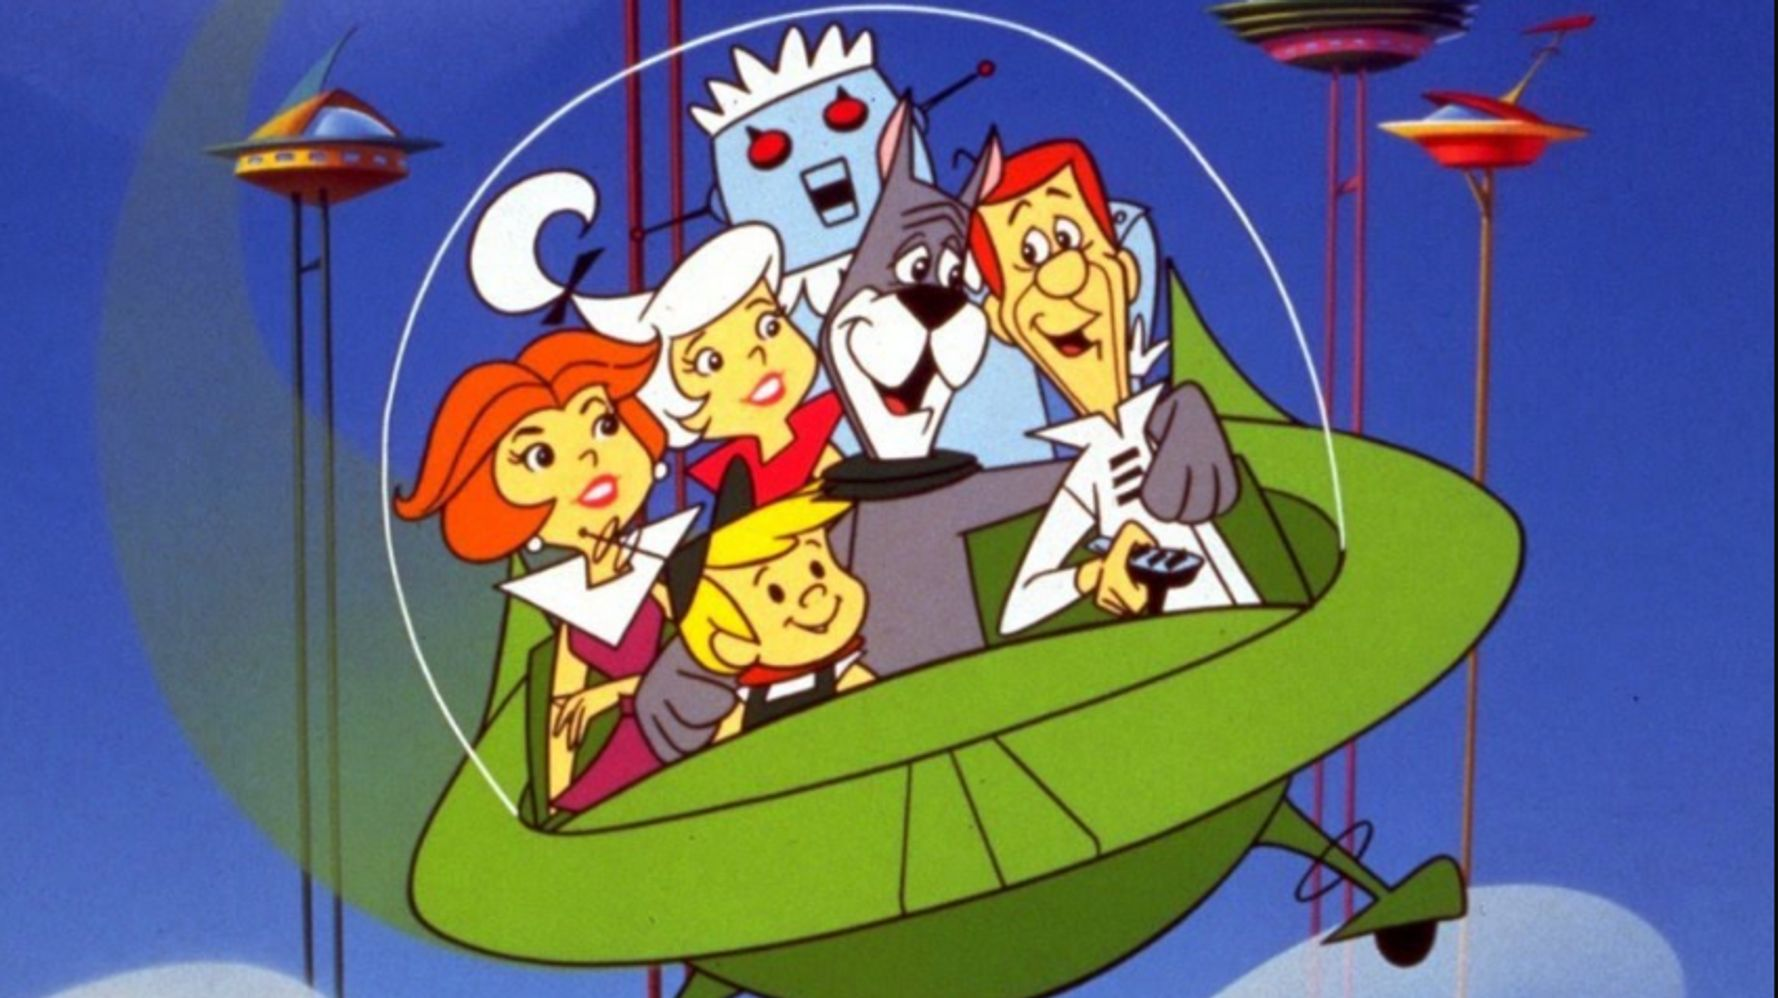 Central Florida To Build Aviation Facility For Jetsons-Like 'Flying Cars' - HuffPost